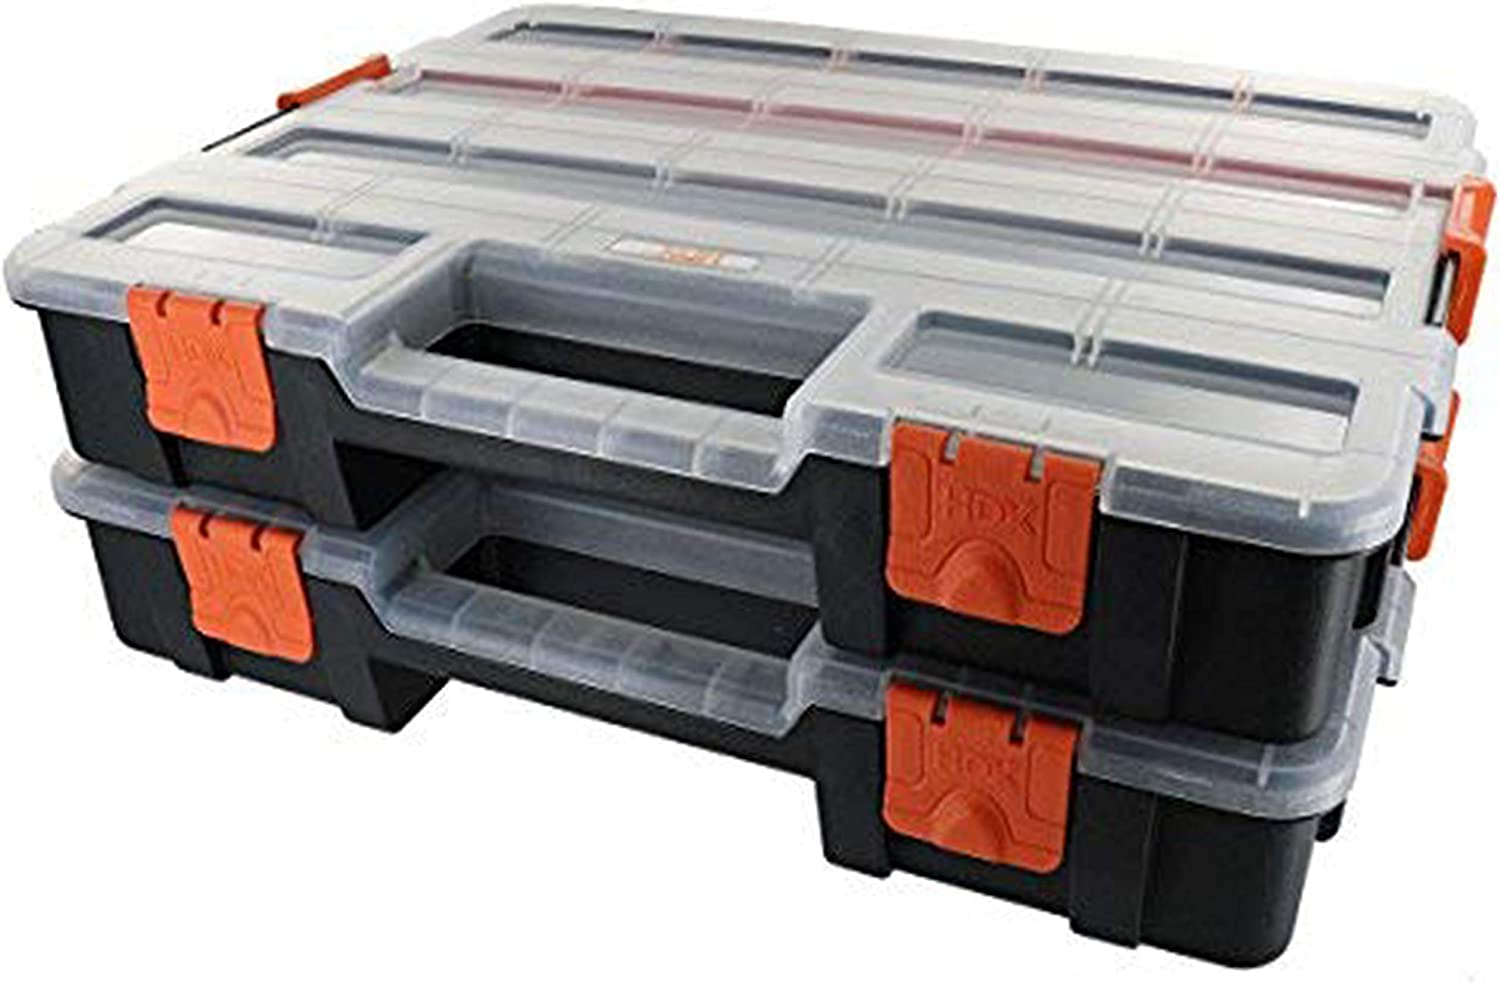 TEJAL HDX Tool Box Organizer, Interlocking Black Small Parts Organizer for Fasteners and Crafts w/Removable Dividers (2 Pack) with Single Touch Door Opener Tool